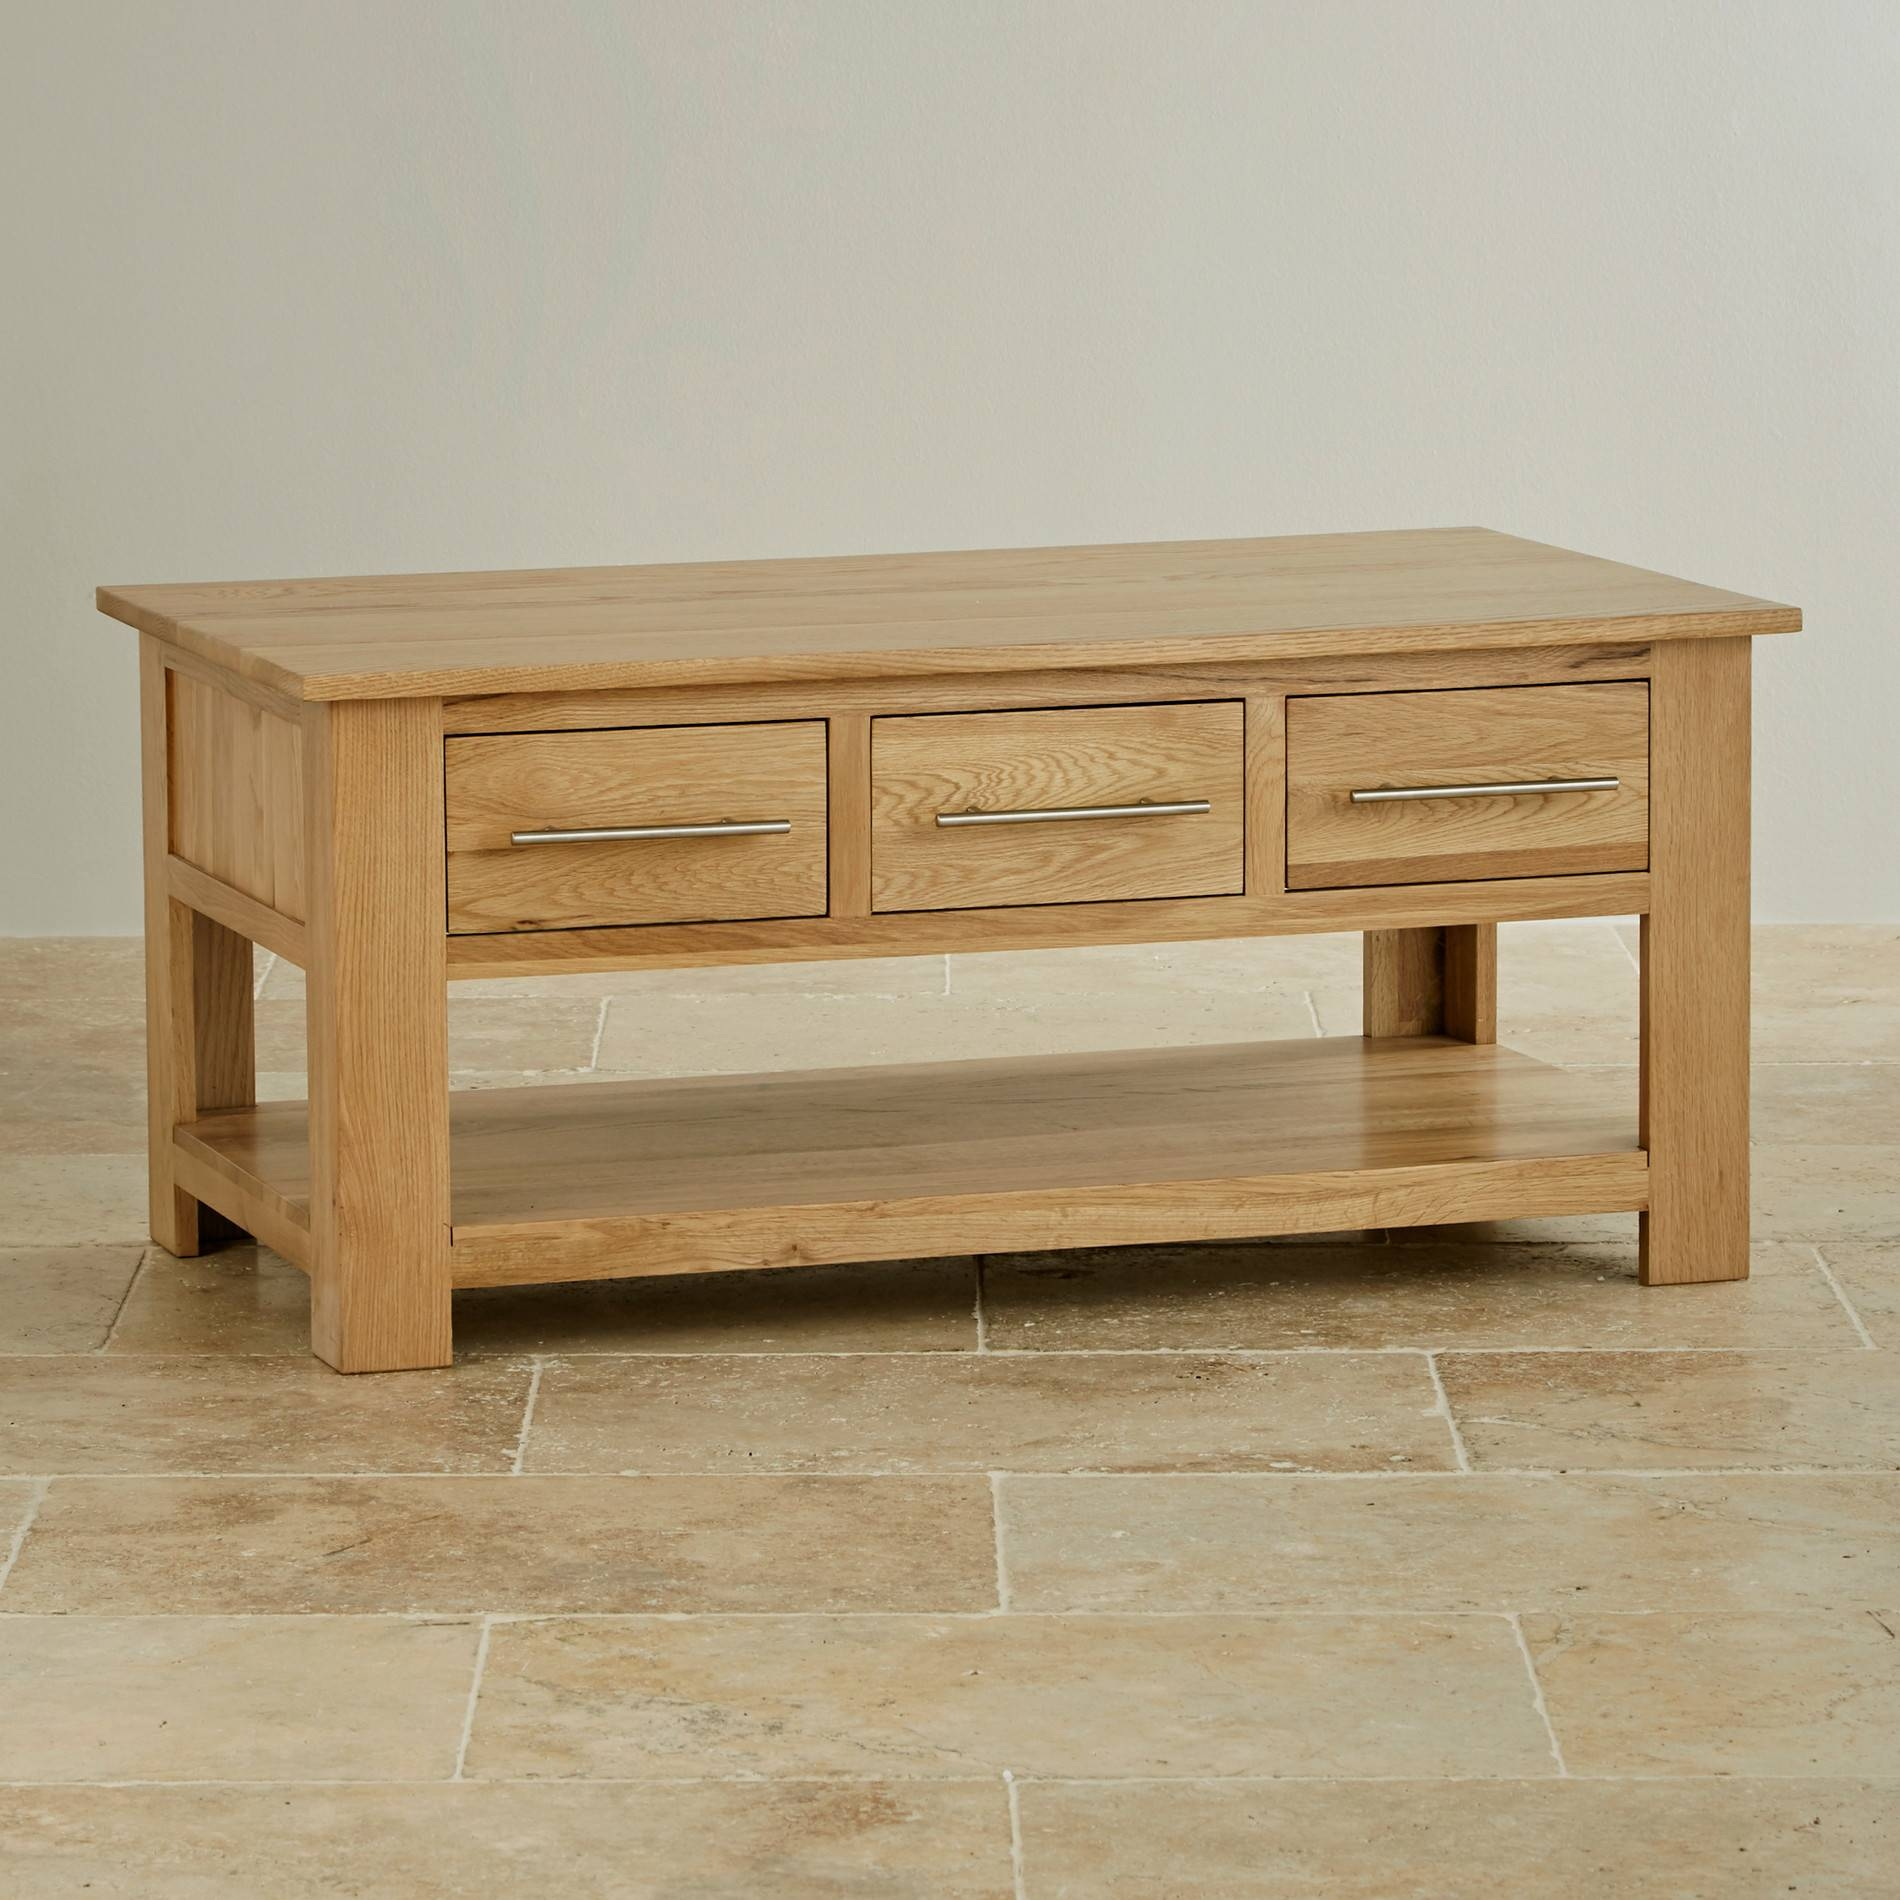 Popular Photo of Oak Coffee Table With Storage